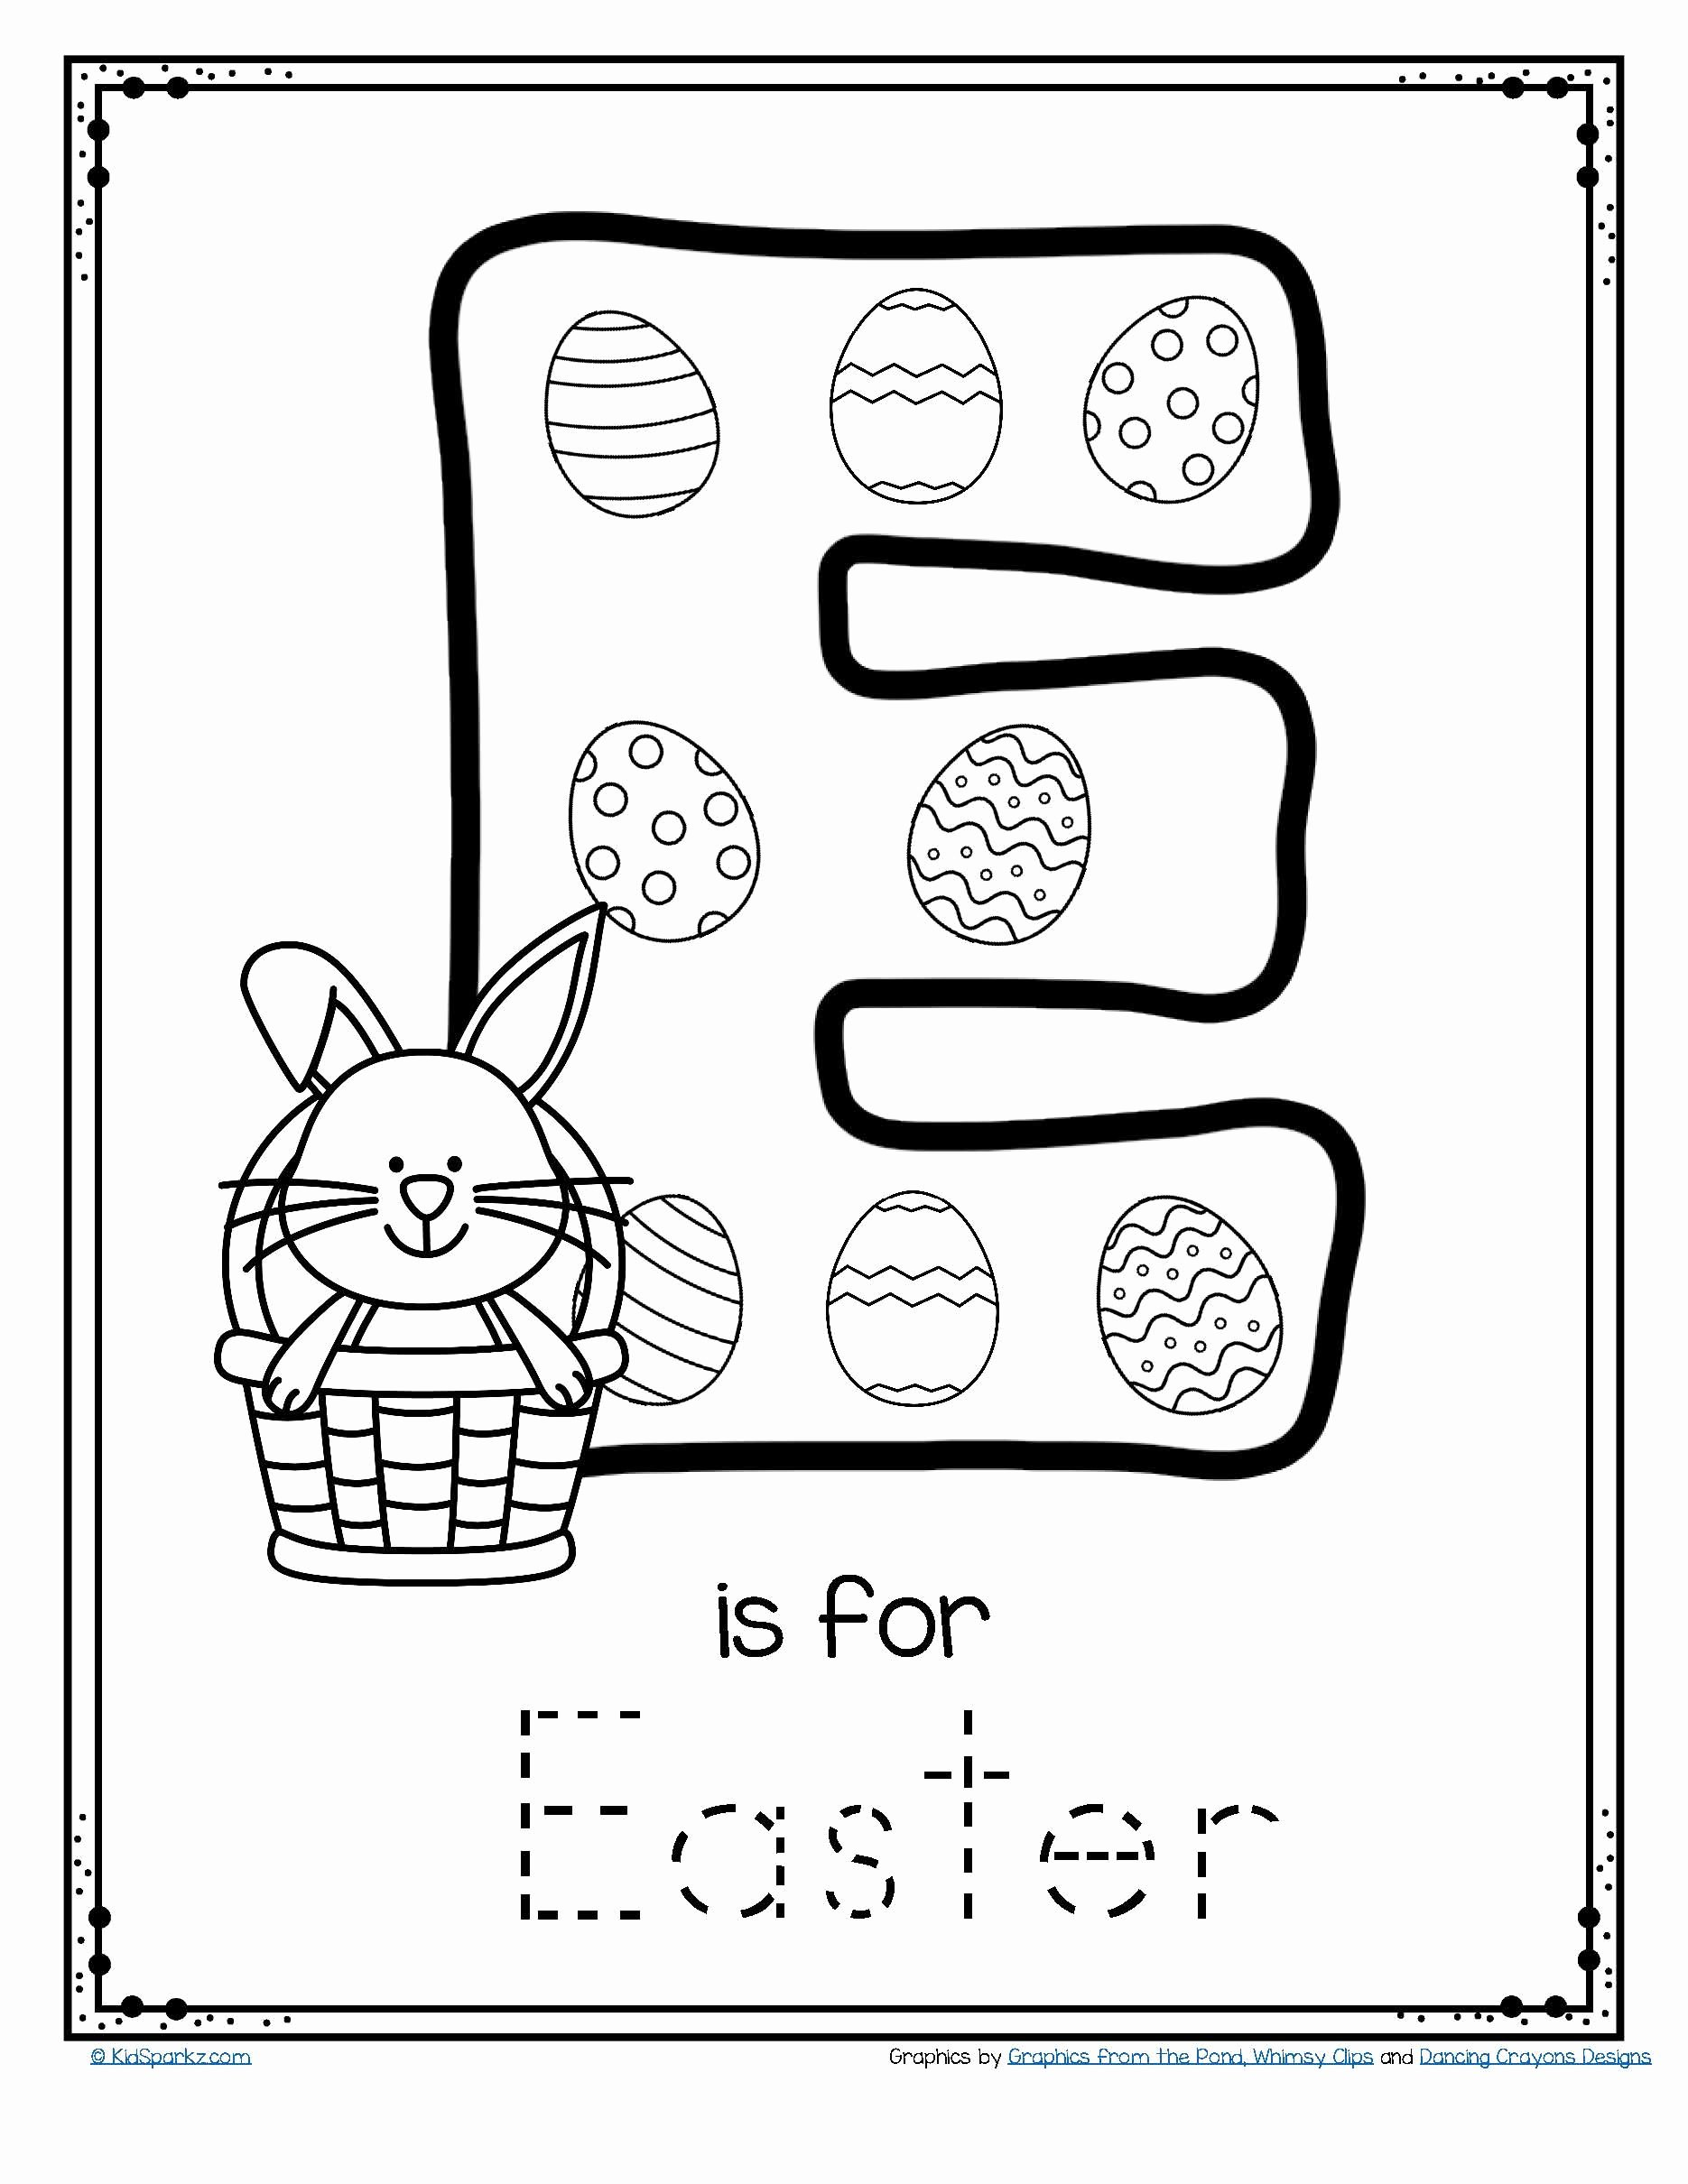 Free Printable Letter E Worksheets for Preschoolers Lovely Letter E is for Easter Trace and Color Printable Free